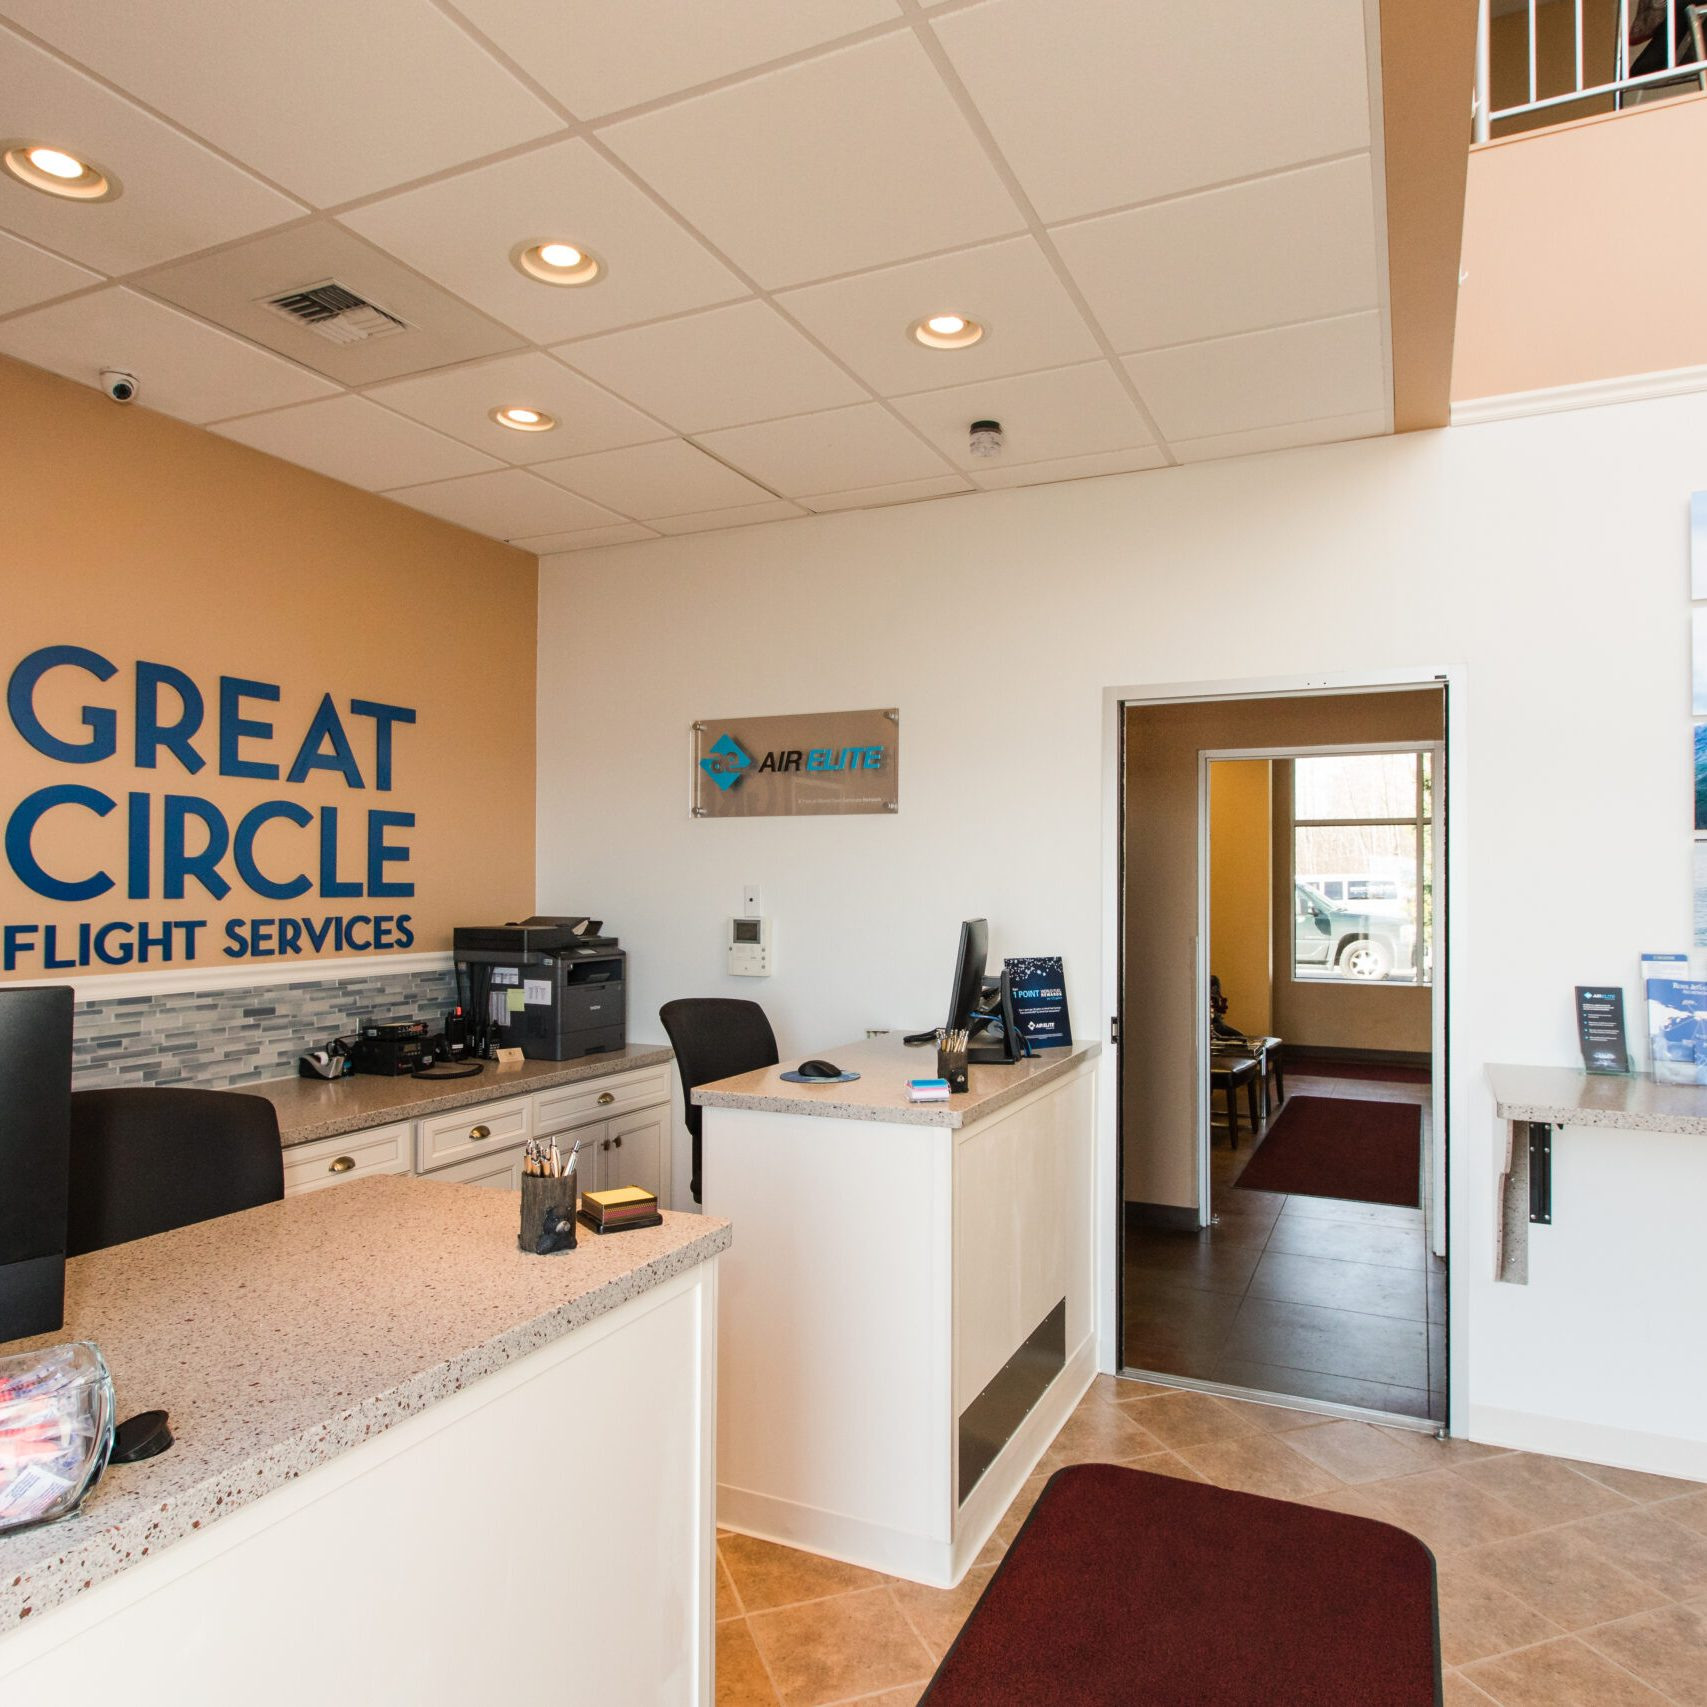 Great Circle Flight Services - Ross Aviation Anchorage lobby